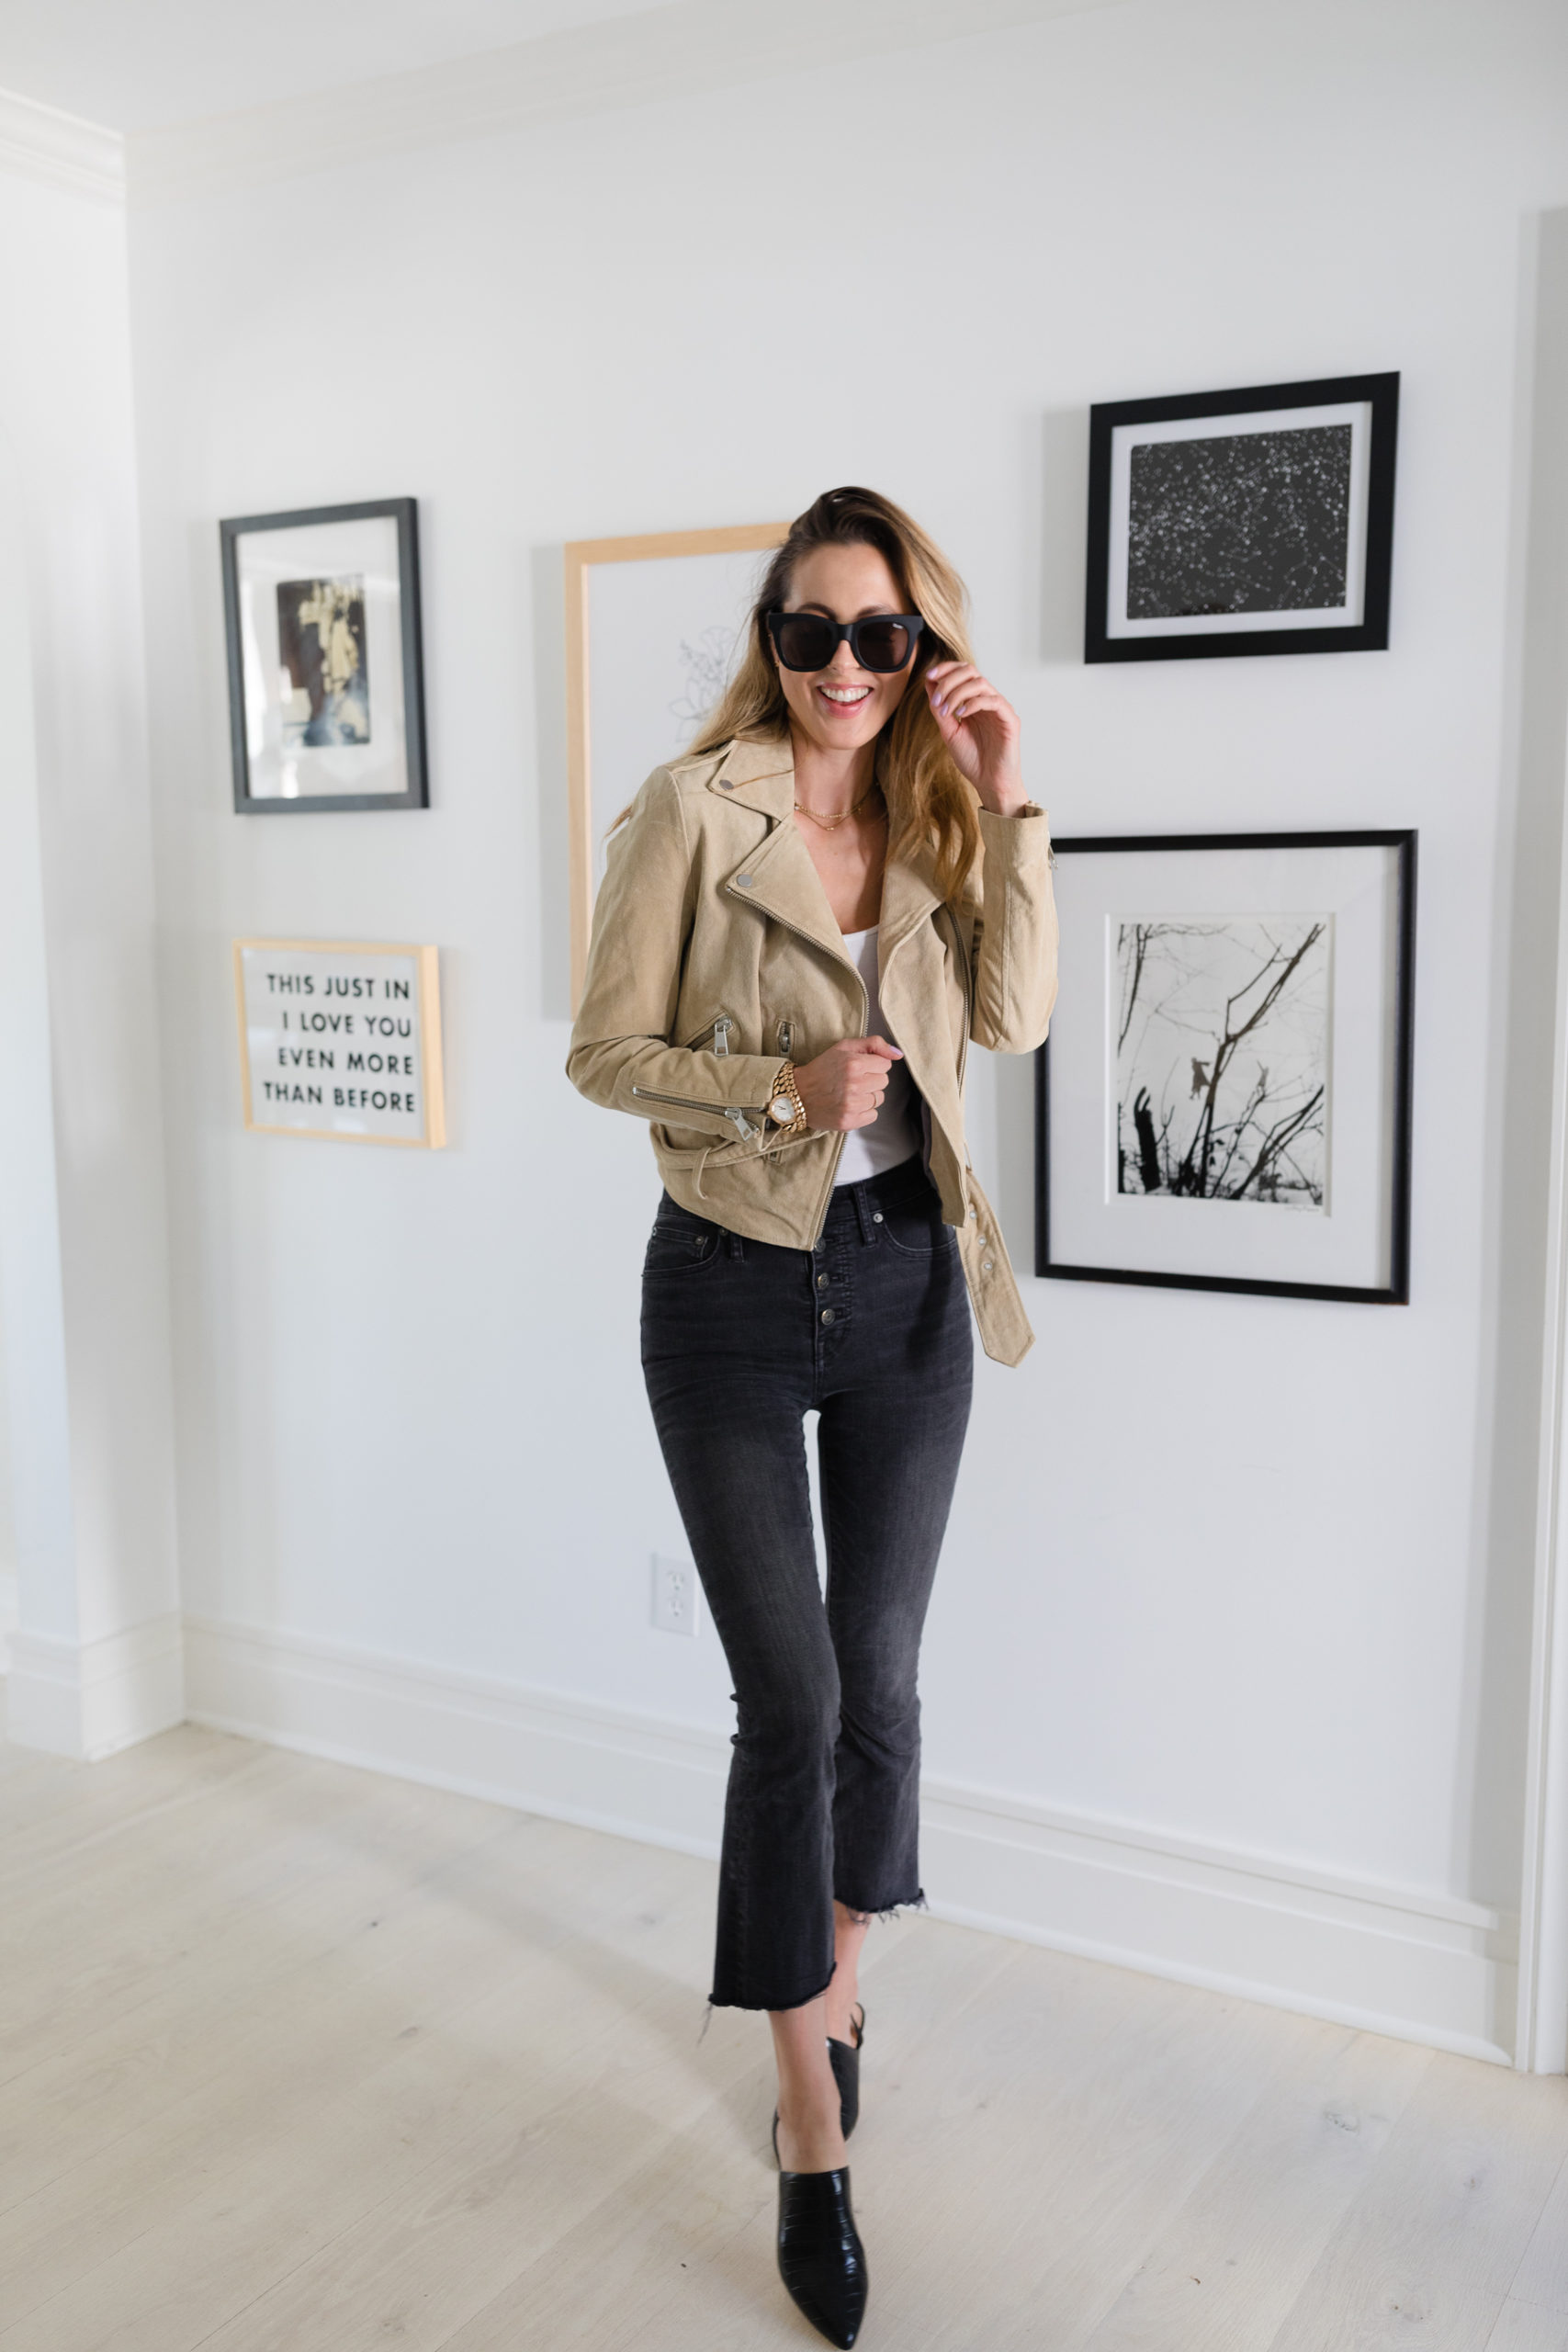 Eva Amurri shares tips for creating the perfect gallery wall